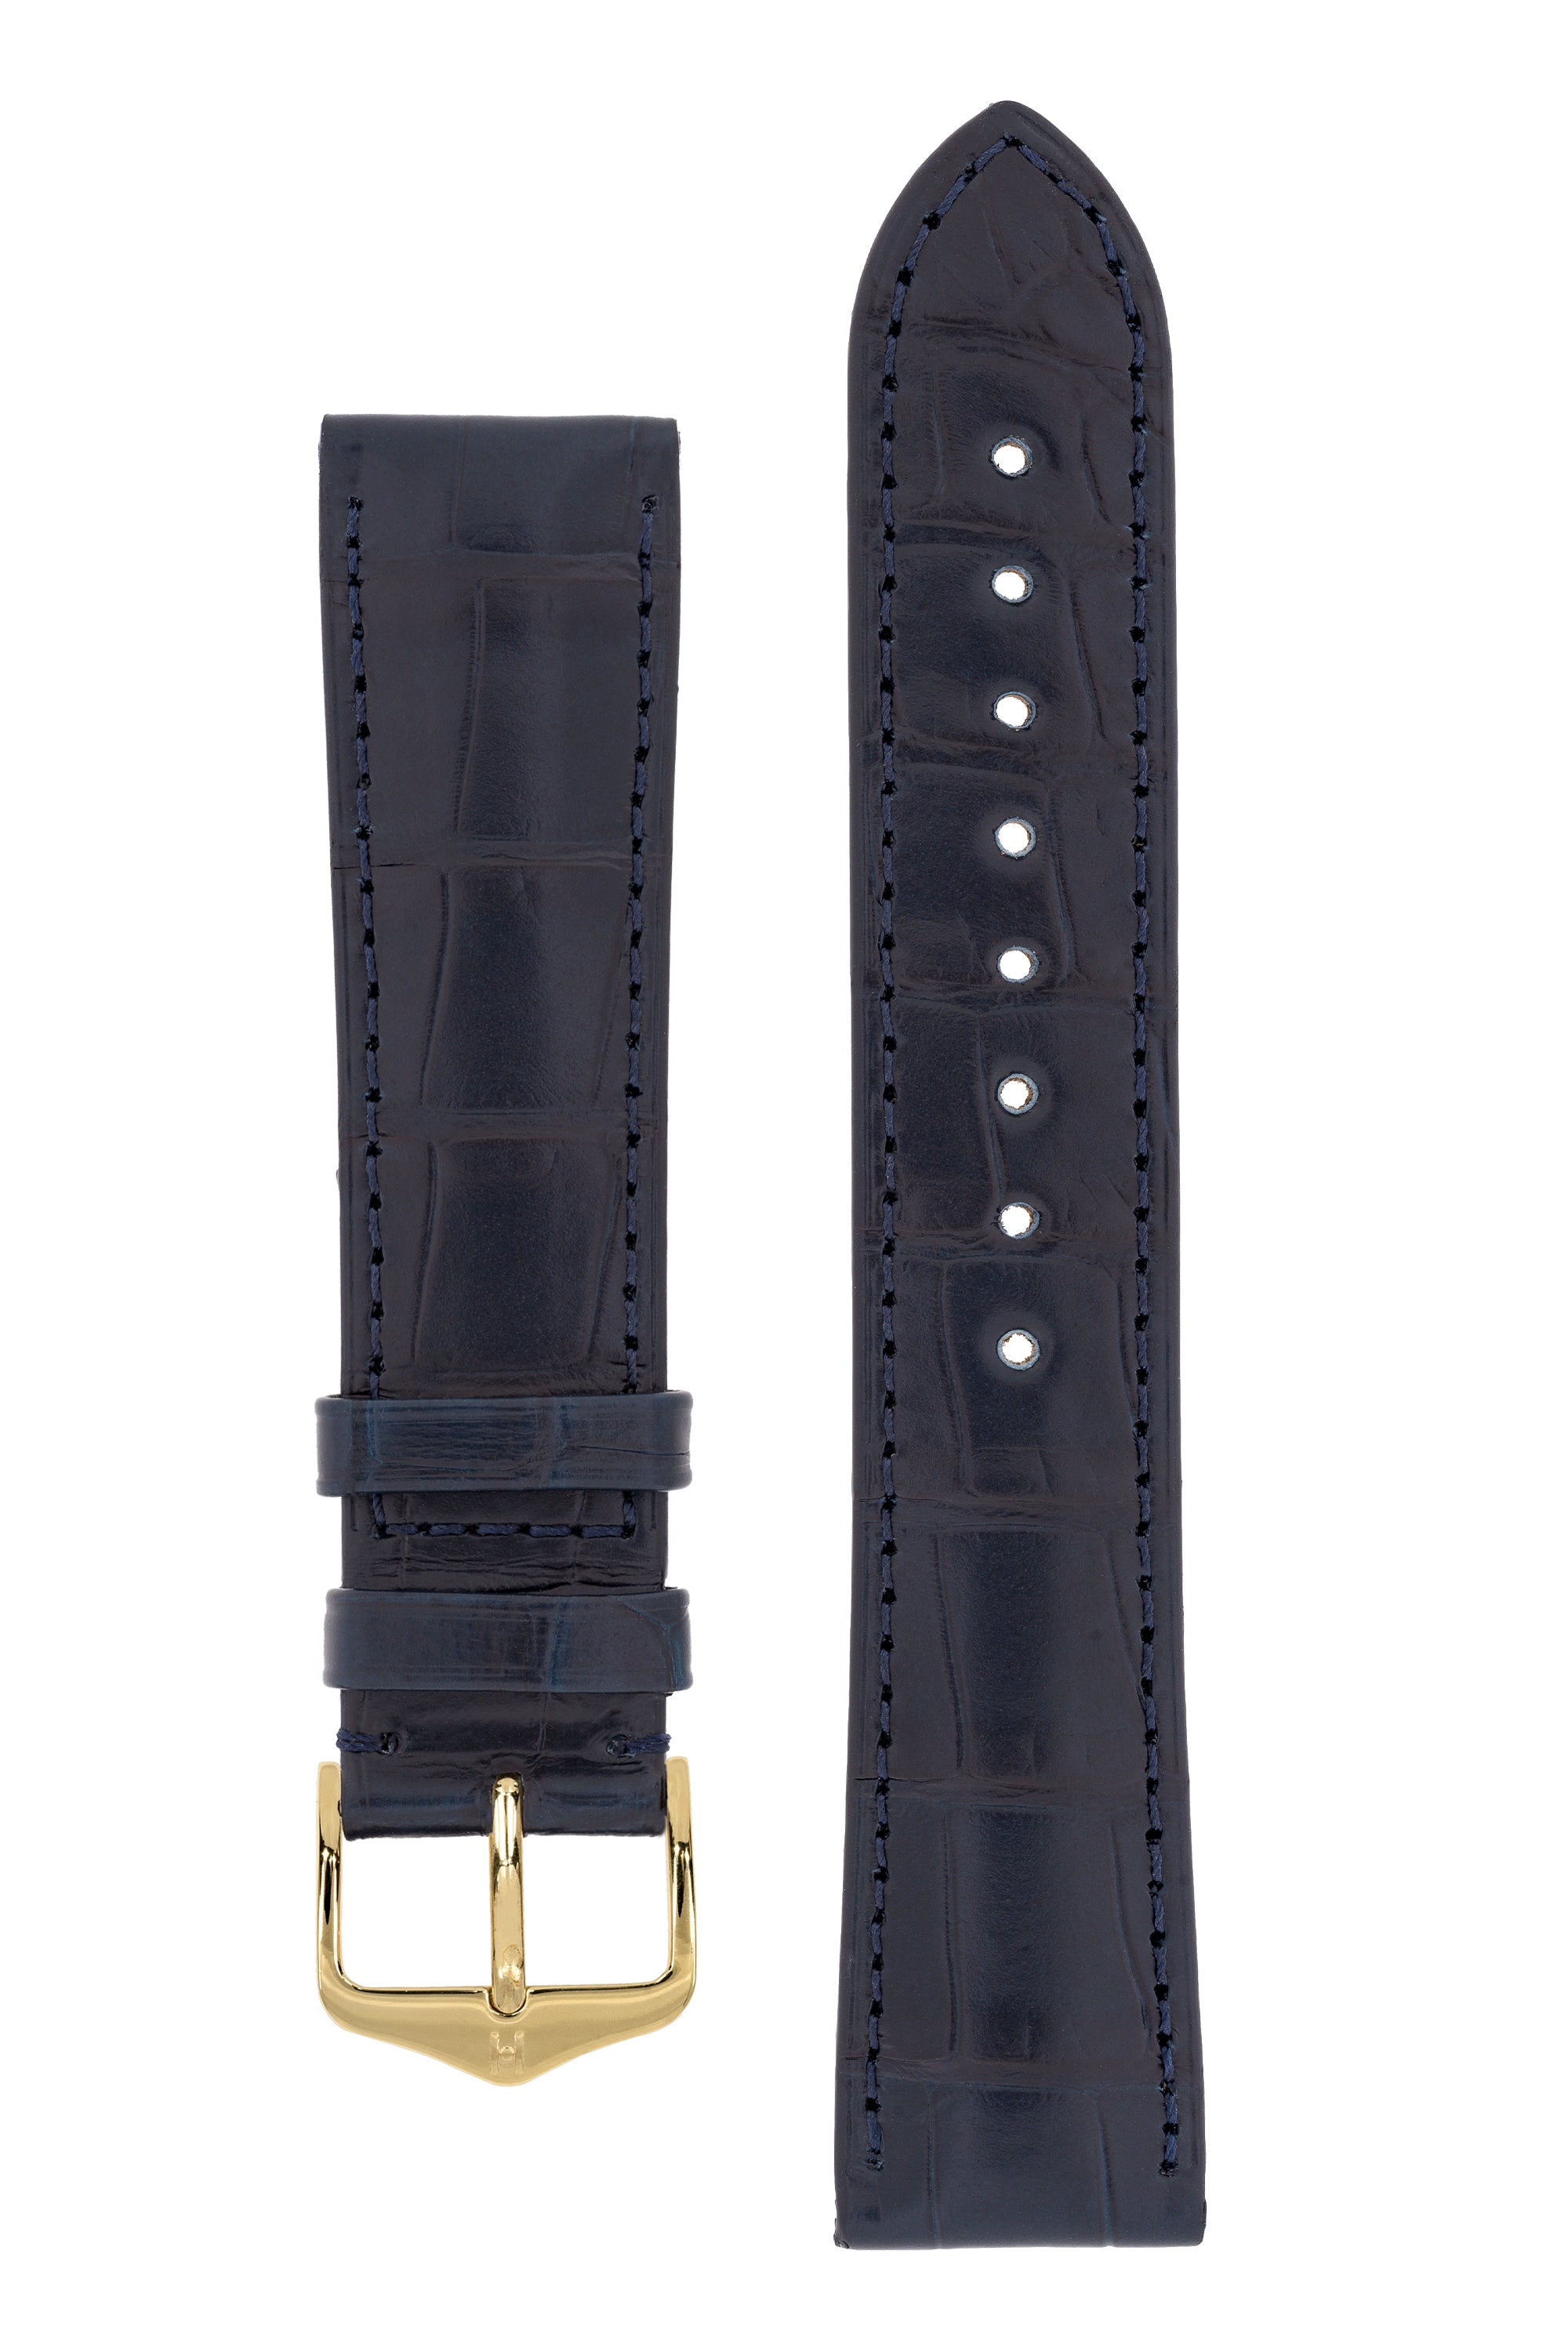 Hirsch LONDON Matt Alligator Leather Watch Strap in BLUE